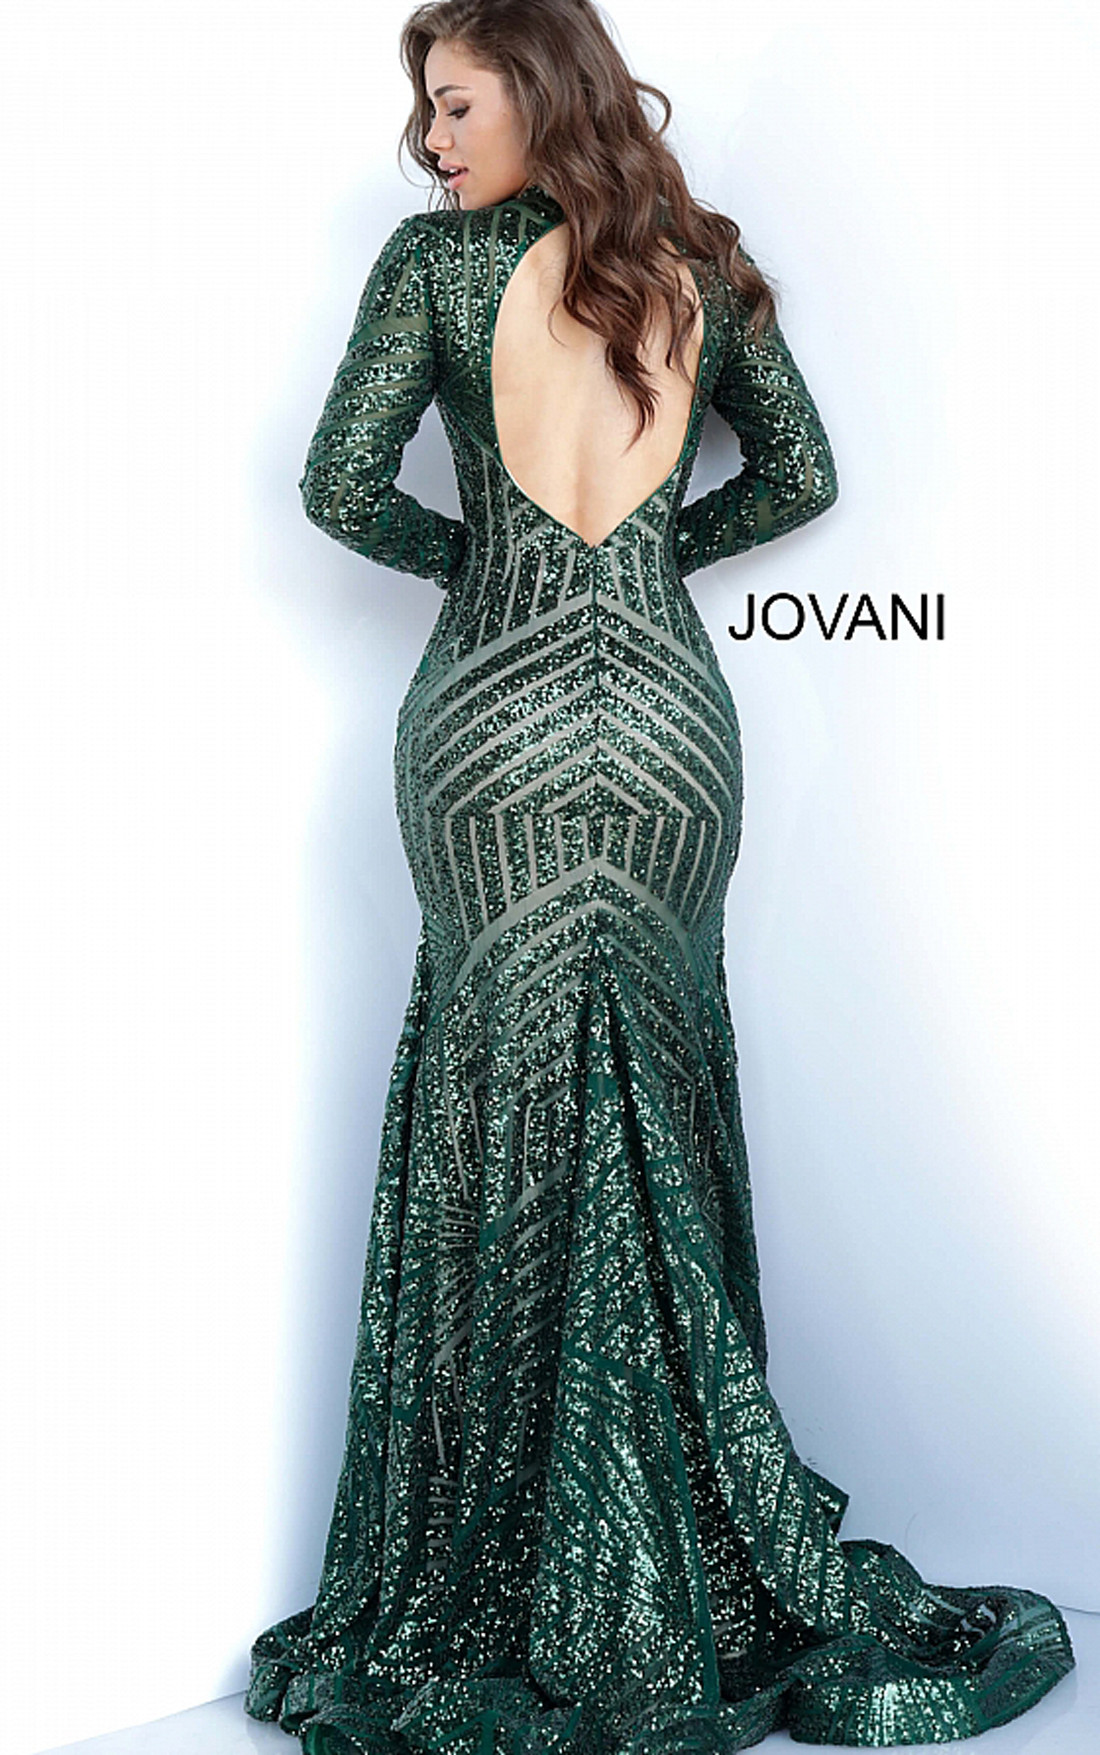 Jovani - Hunter Sequin Open Back Dress (4060)